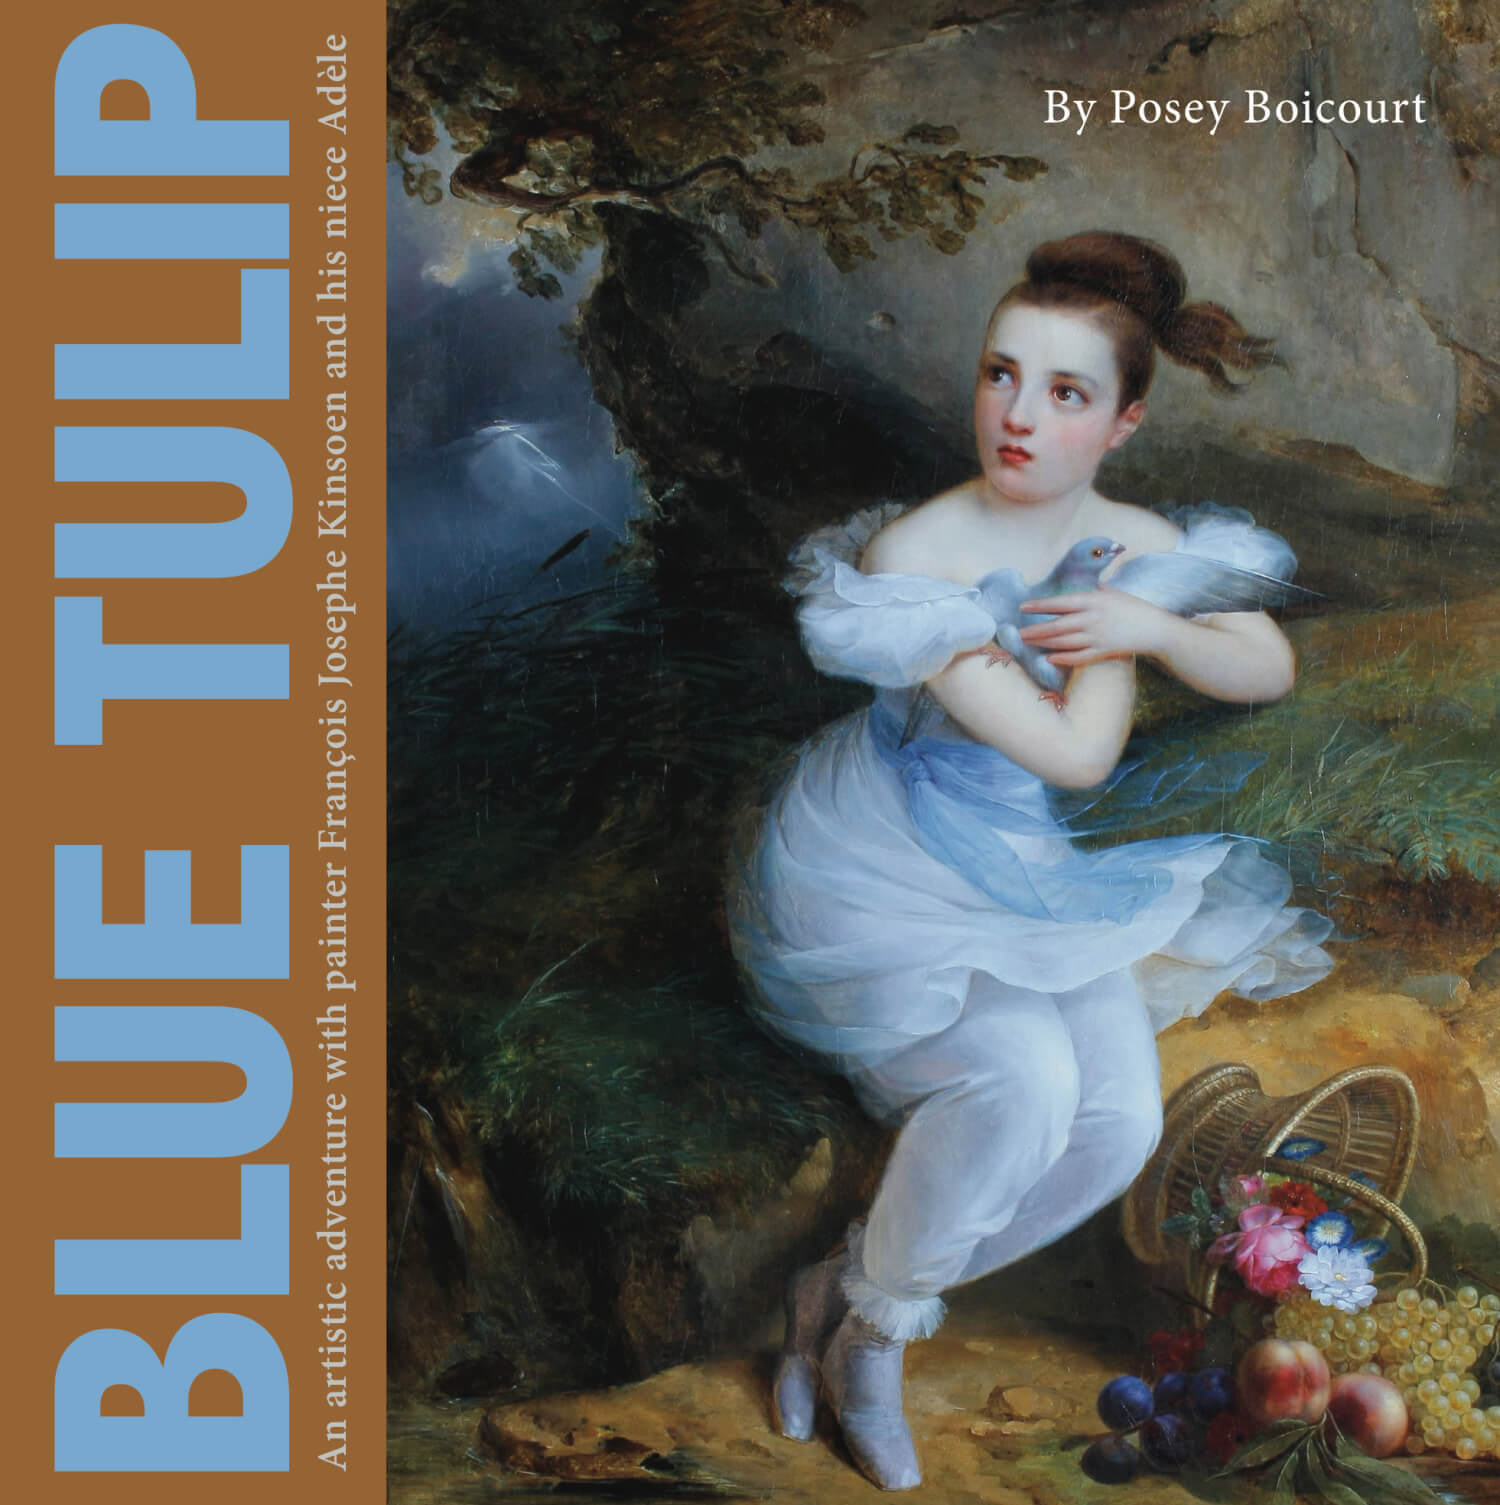 RiverArts Salon: The Artistic Adventures of Blue Tulip with Posey Boicourt